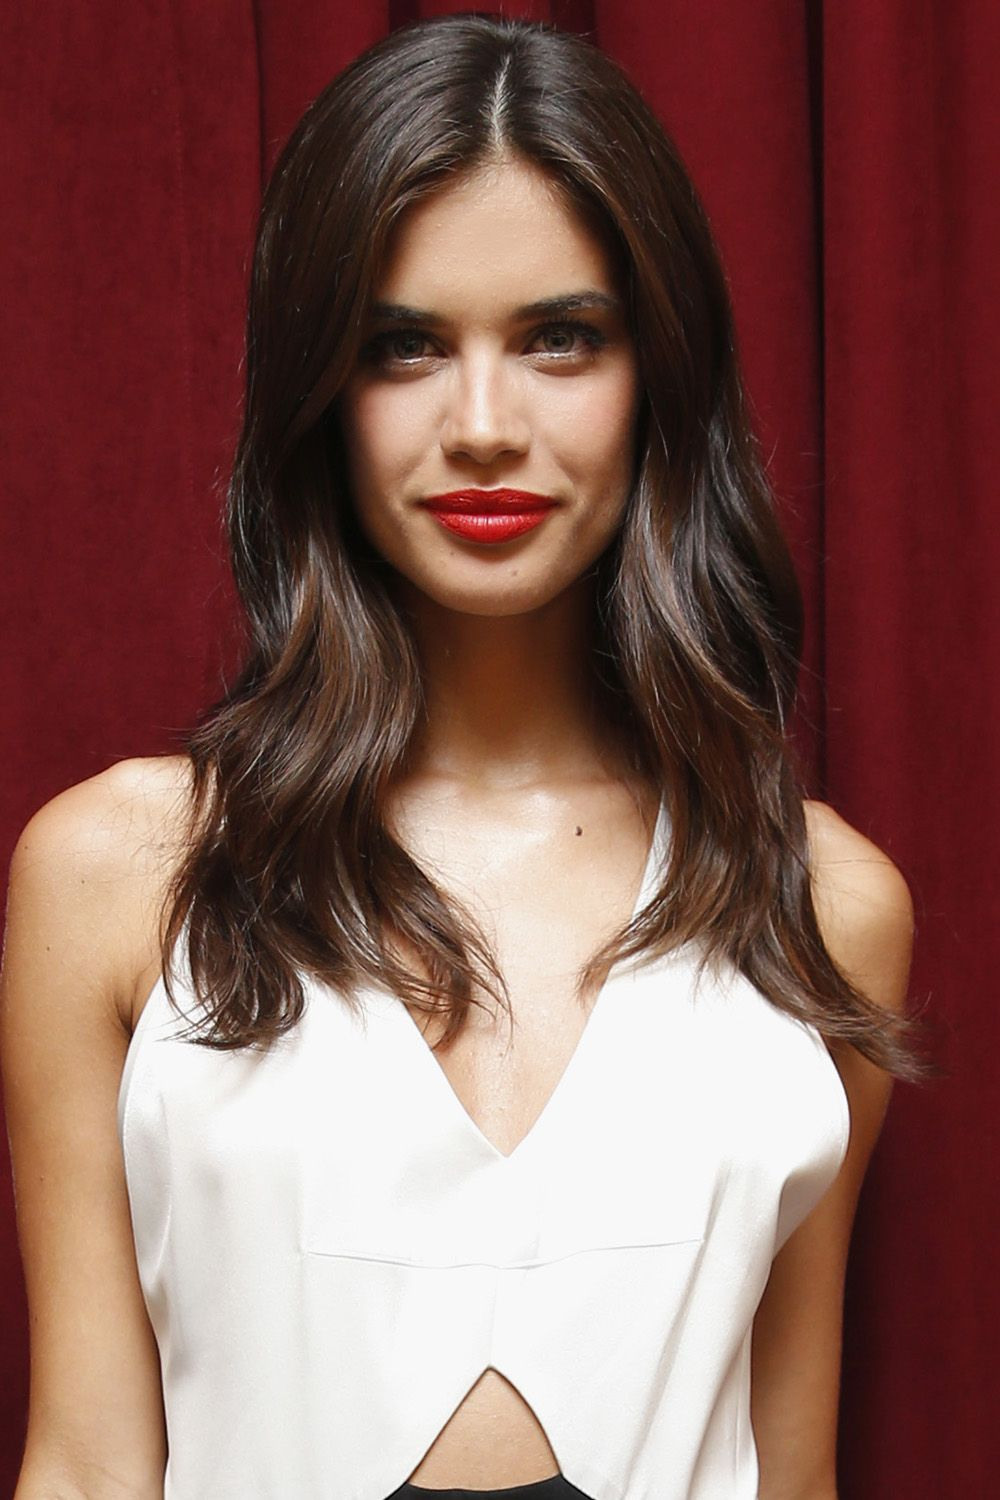 Hairstyles For Fall 2015 The 10 Trendiest Haircuts For Winter 2017  Straight Hair Illusions